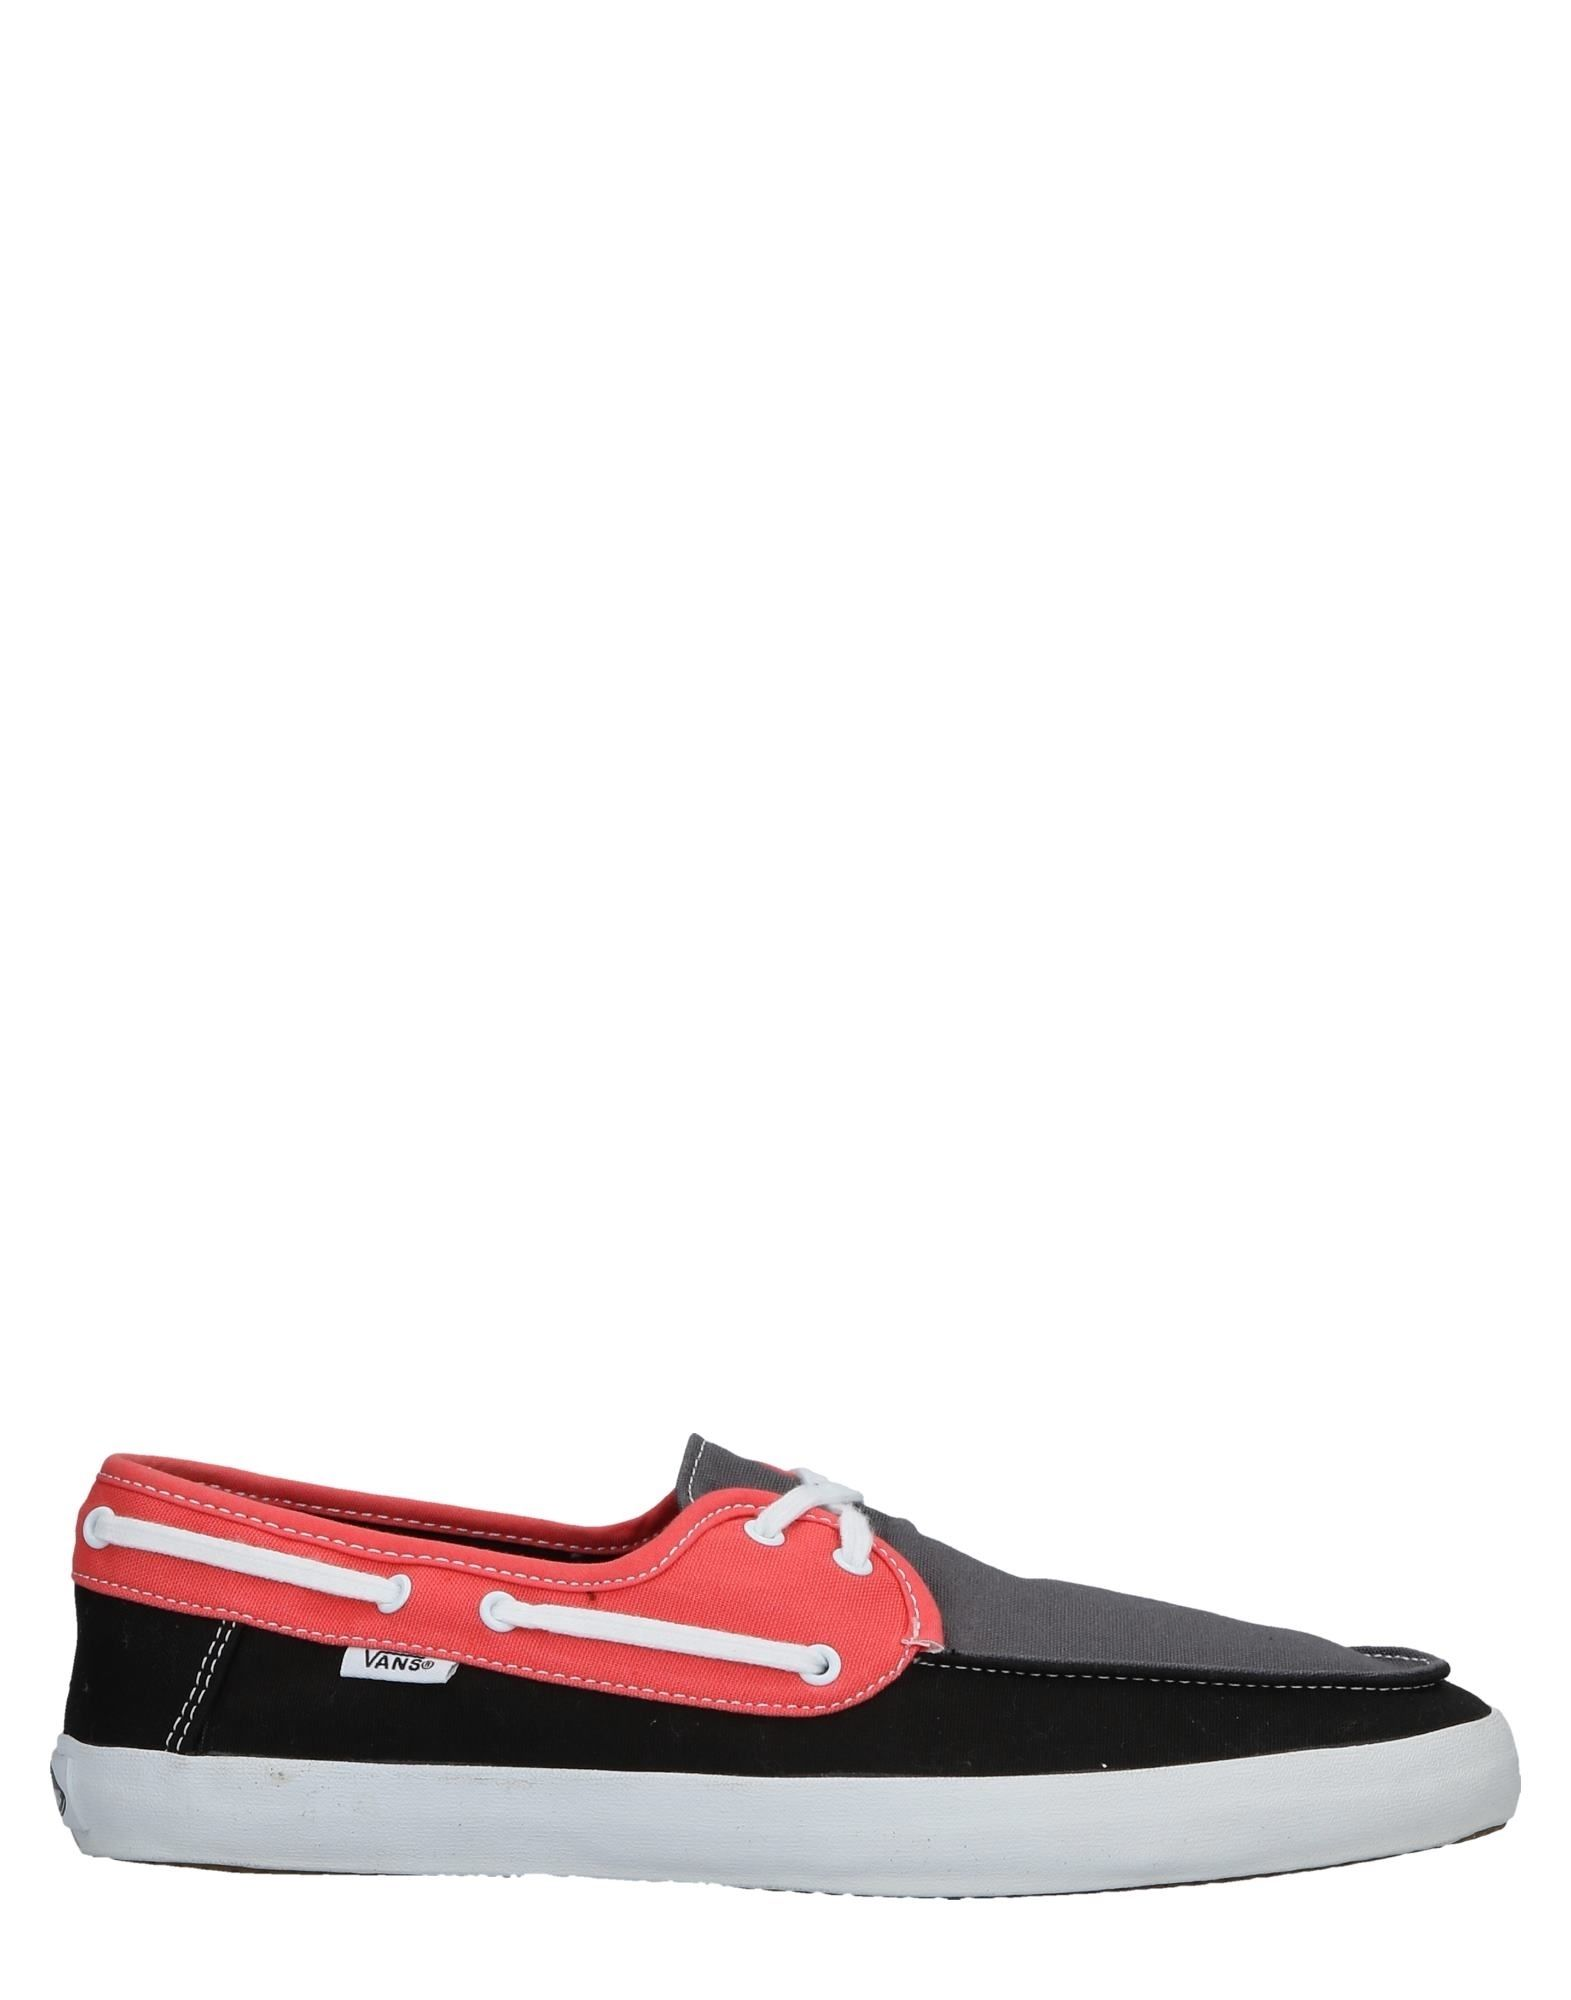 Vans Loafers - Men Vans Loafers Kingdom online on  United Kingdom Loafers - 11518721VT 71eaf2